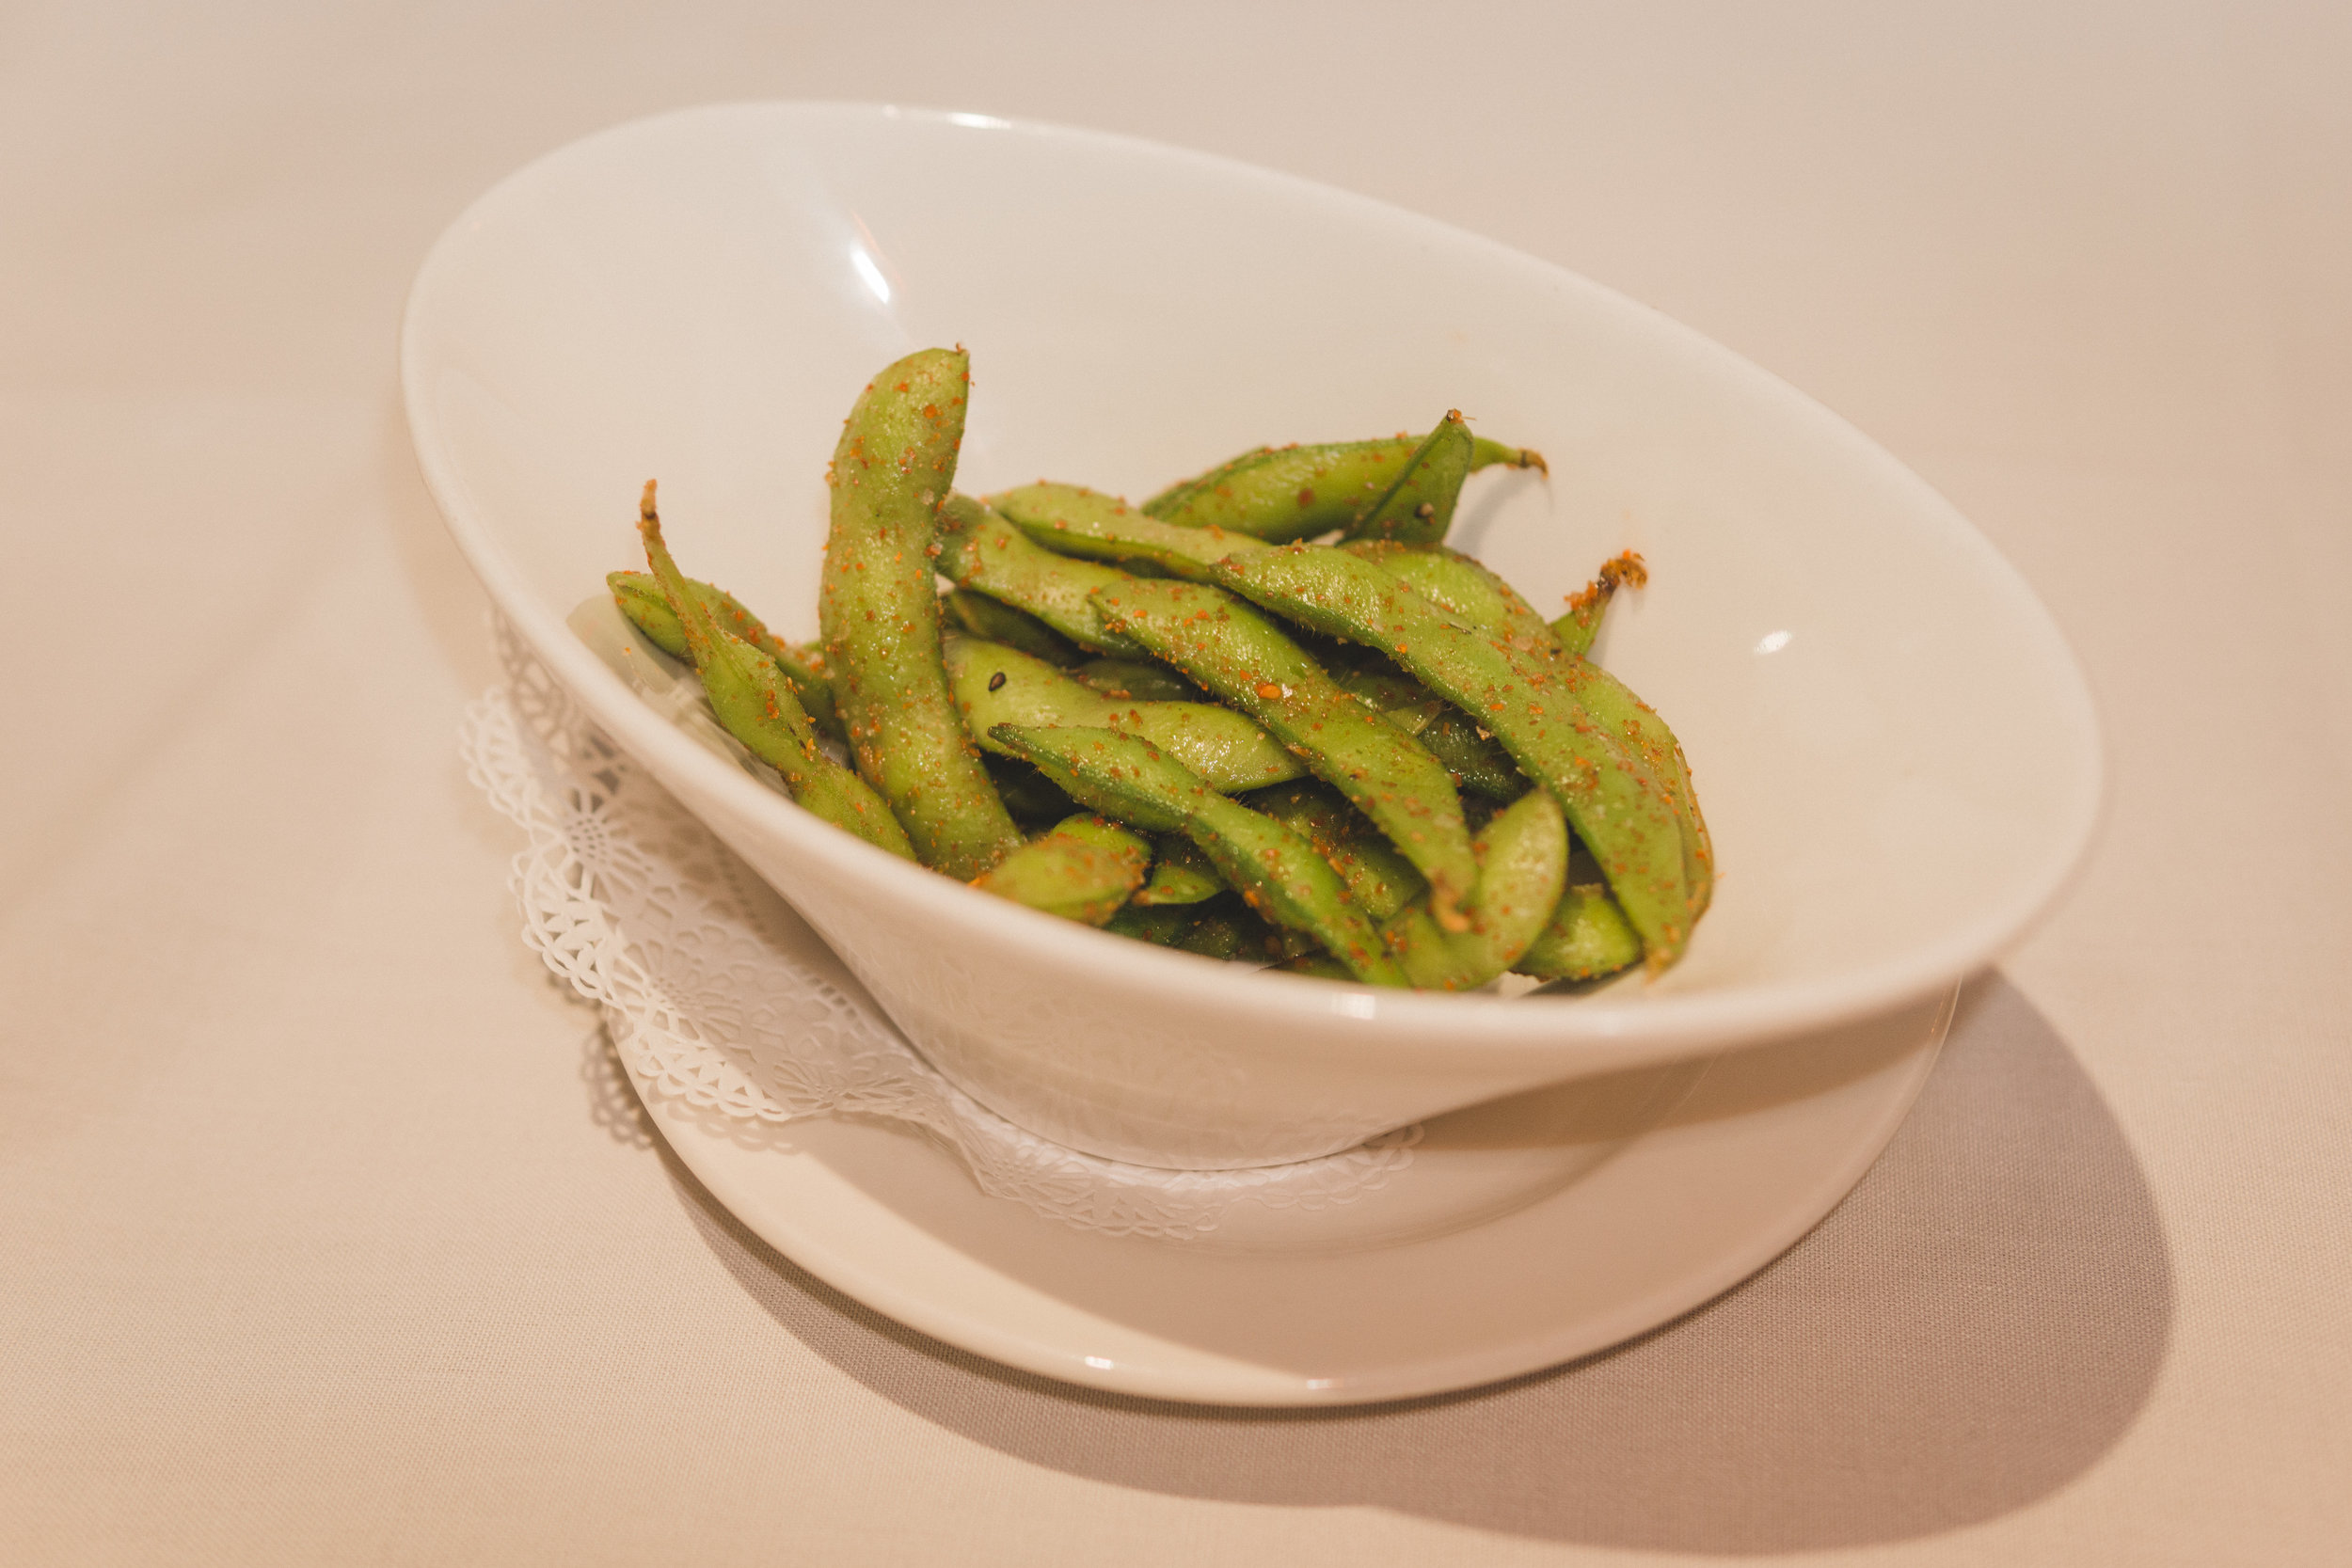 Every meal at Roy's comes with a little taste of edamame tossed with sesame oil, Japanese red pepper seasoning and sugar.